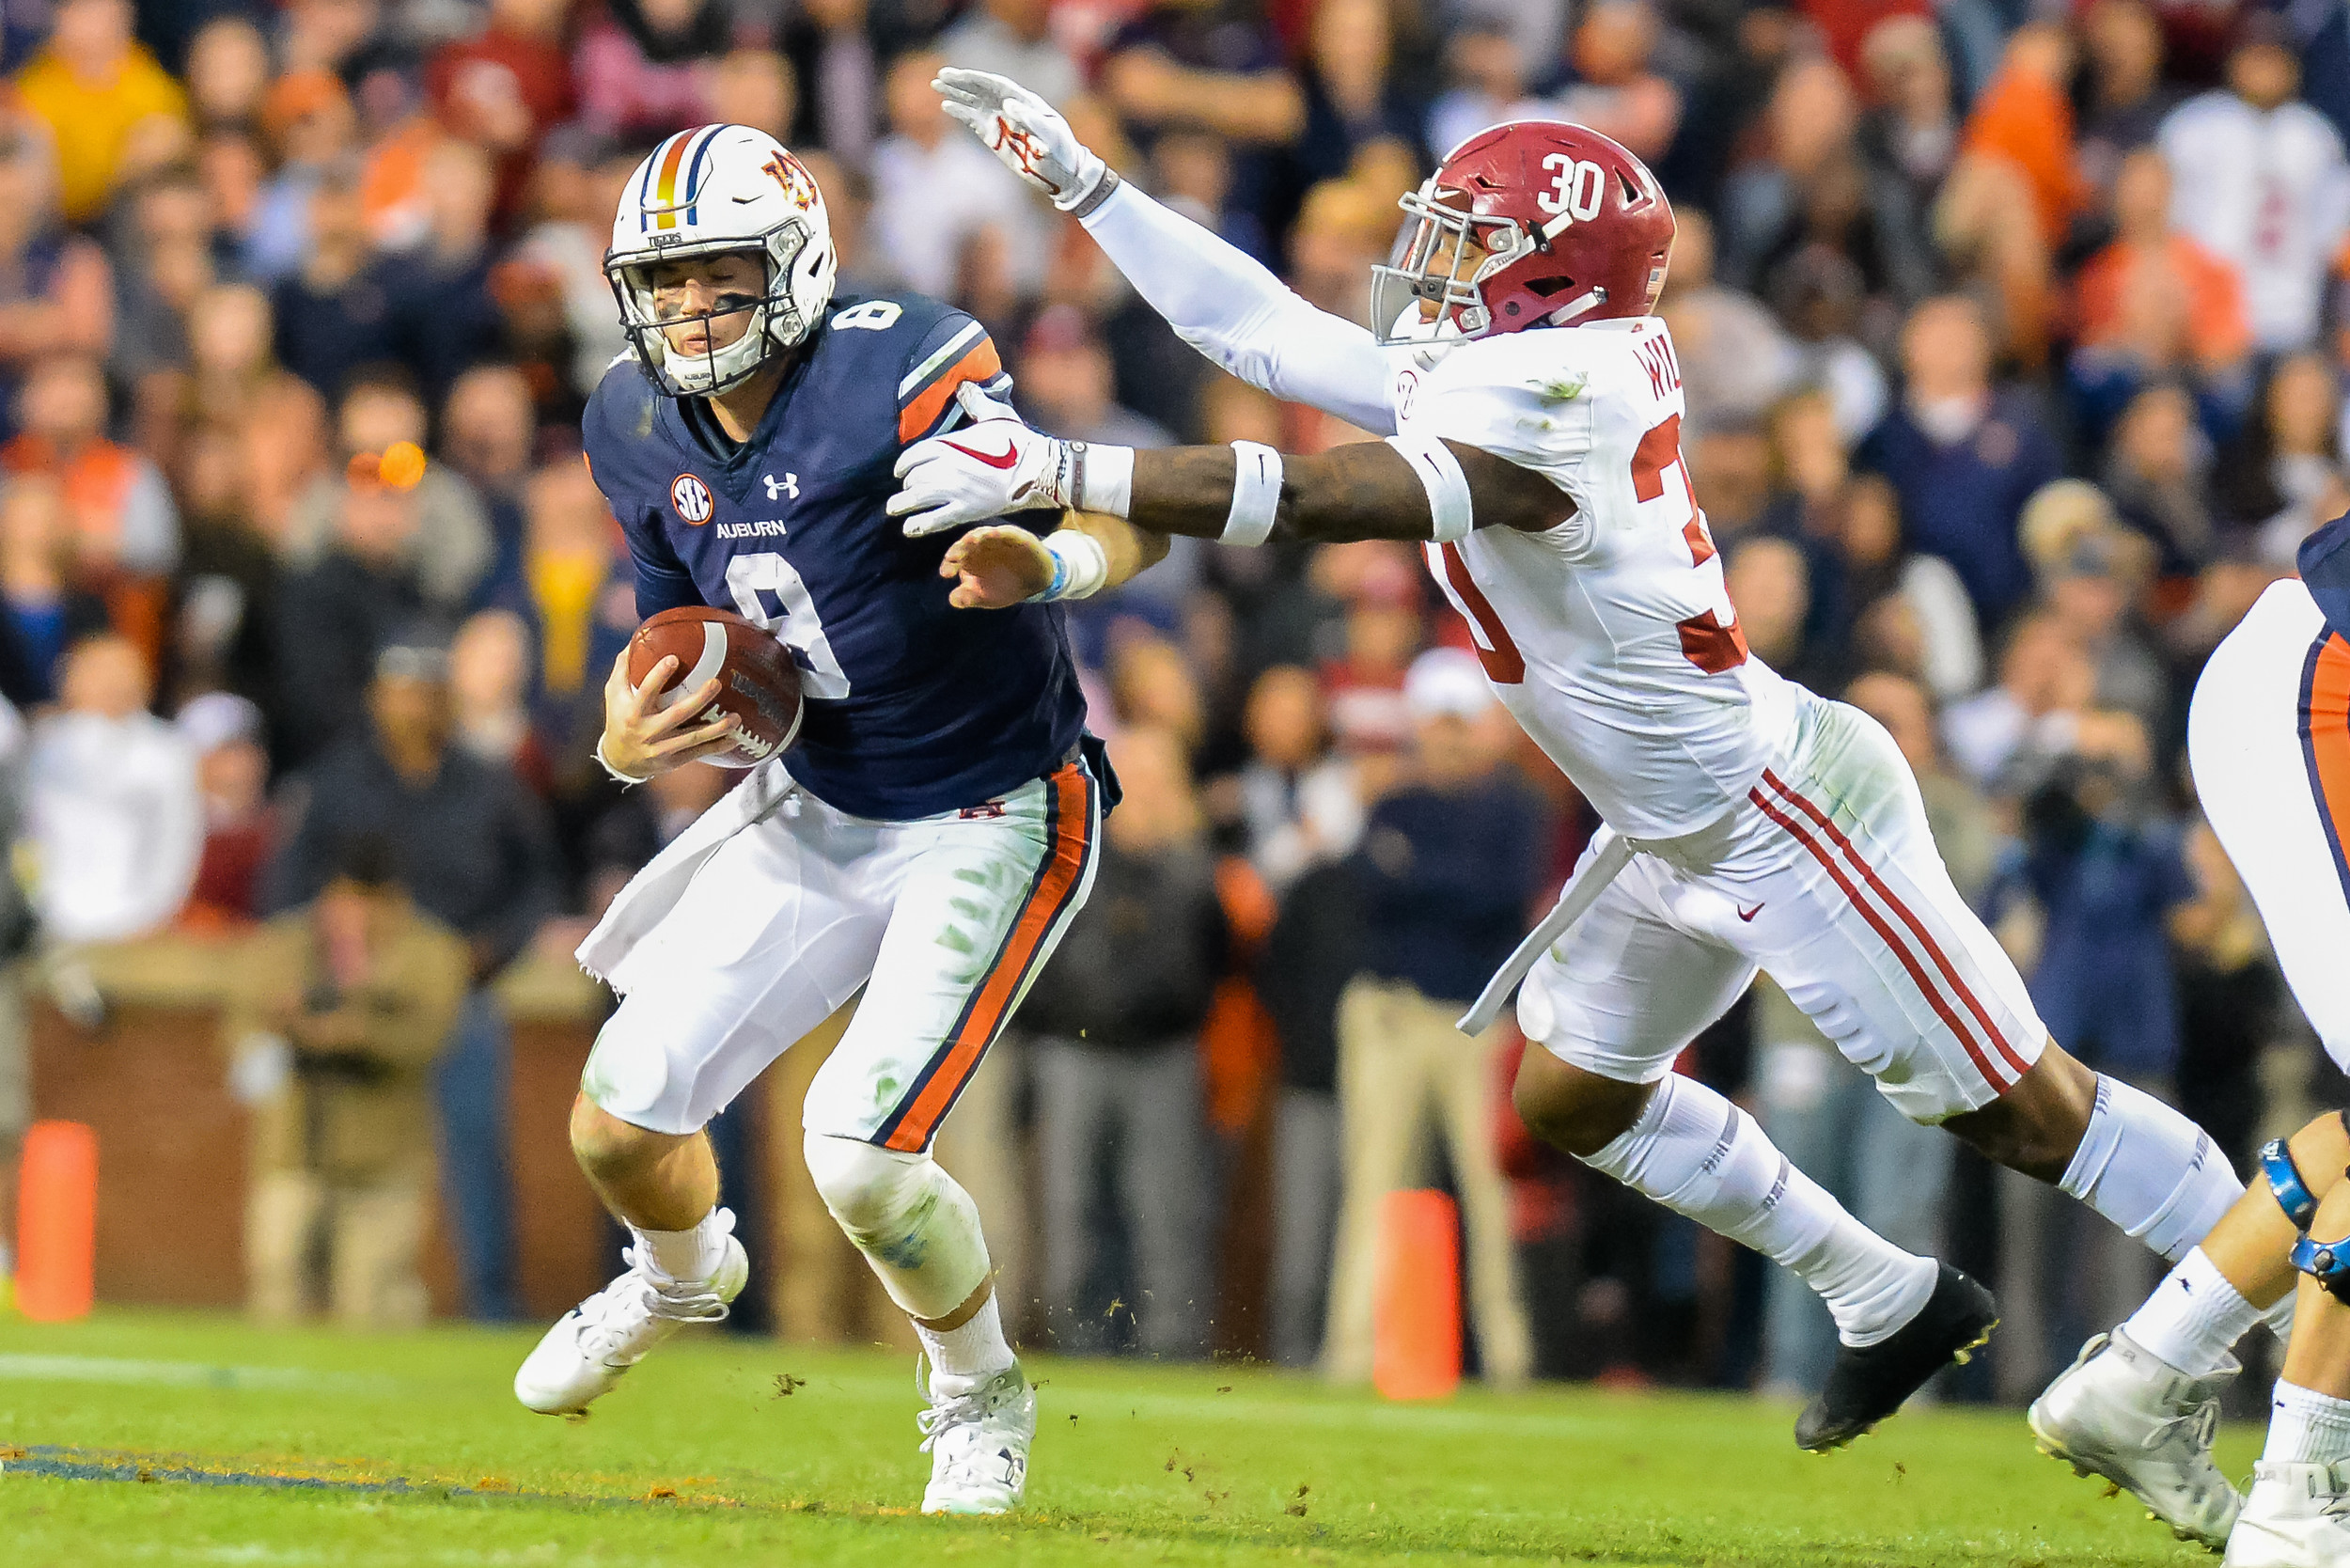 Alabama Crimson Tide linebacker Mack Wilson (30) pressures Auburn Tigers quarterback Jarrett Stidham (8) during the second half of Saturday's game, at Jordan-Hare Stadium.